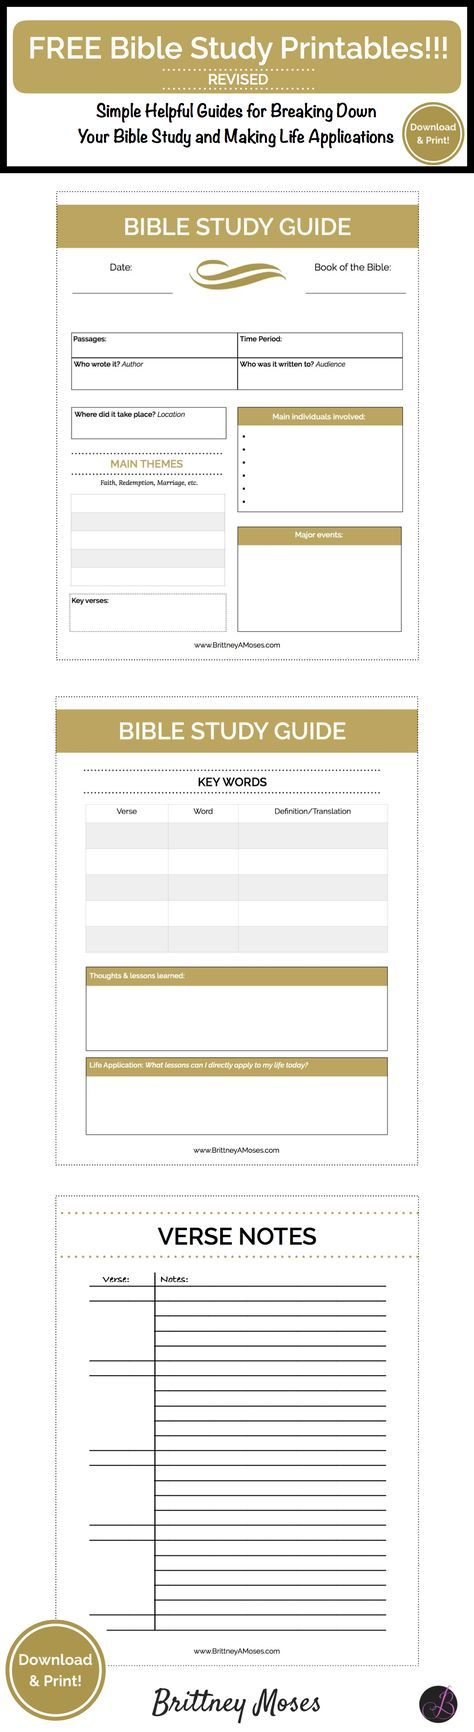 worksheet Homiletics Worksheet 13 best homiletics bsf images on pinterest bible study journal free printable alert a couple of years ago i decided to put together